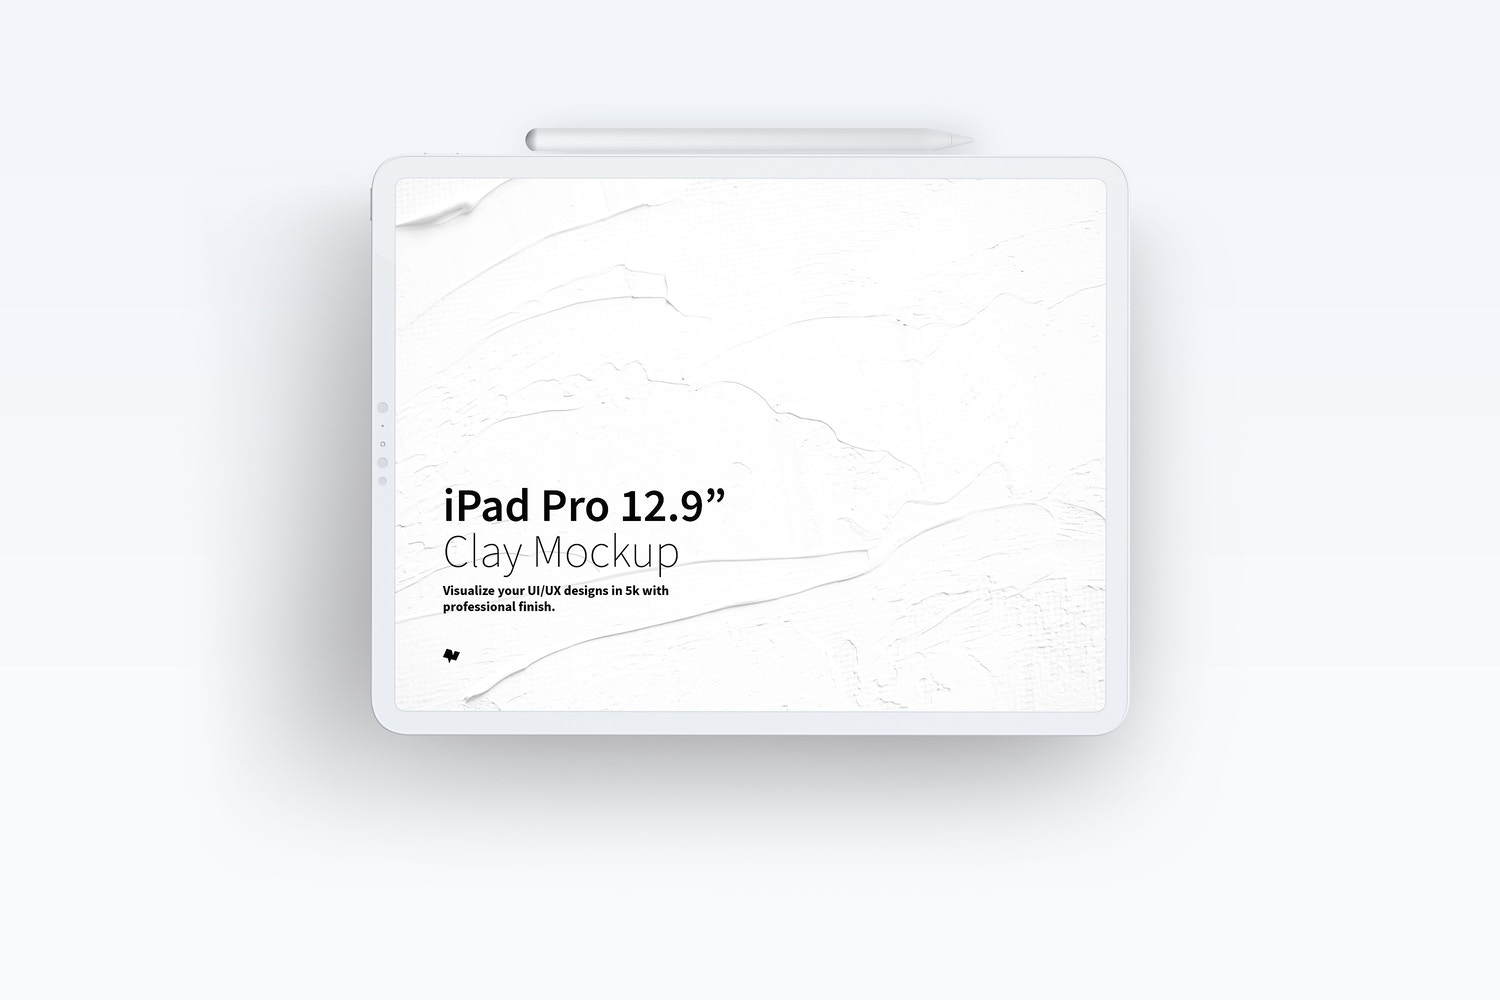 "Clay iPad Pro 12.9"" Mockup, Landscape Front View by Original Mockups on Original Mockups"